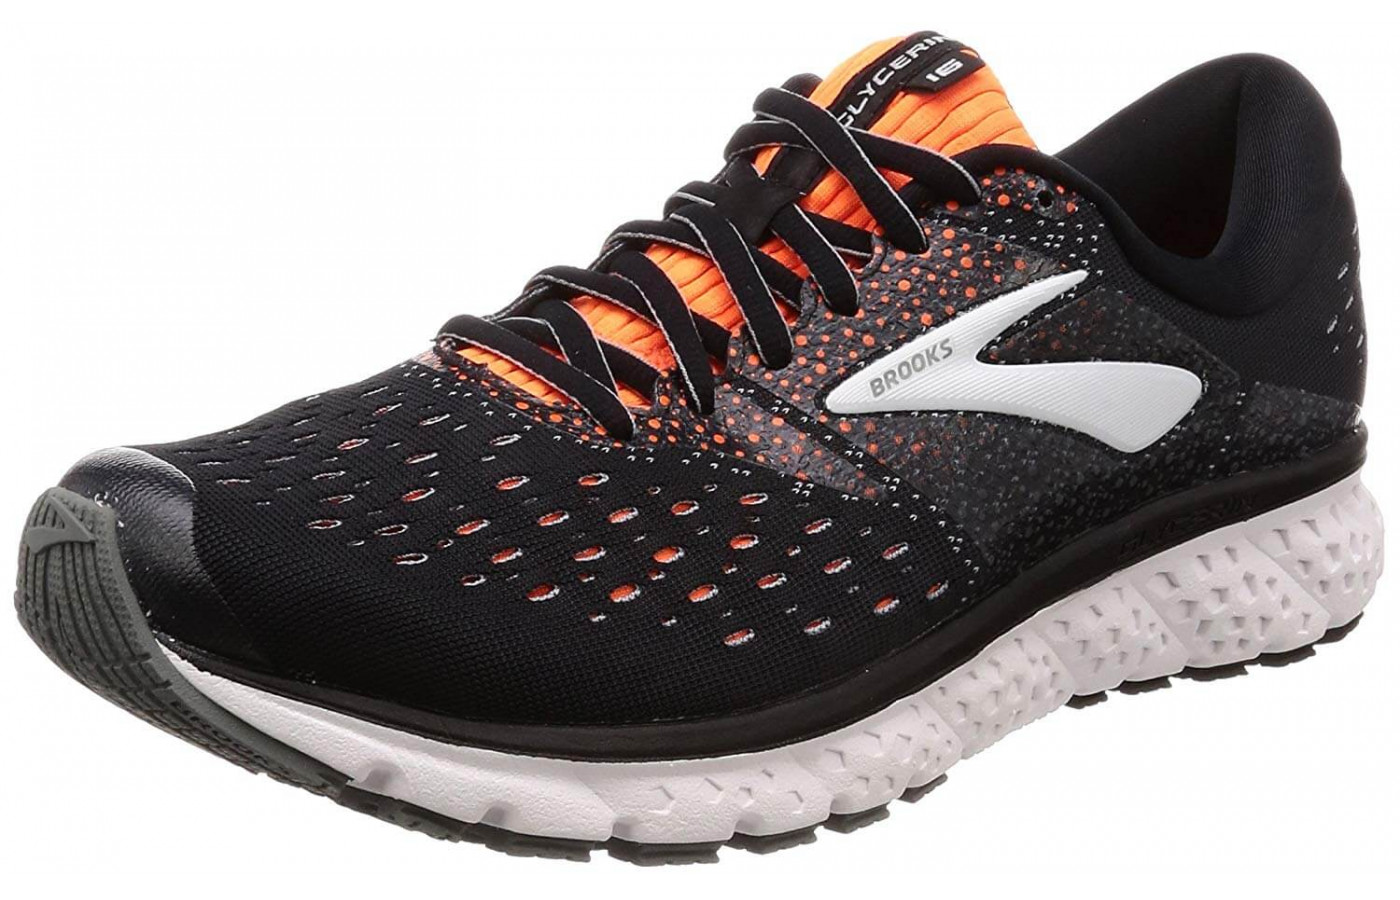 391971afd1a The Brooks Glycerin 16 features an IDEAL pressure zone midsole design ...